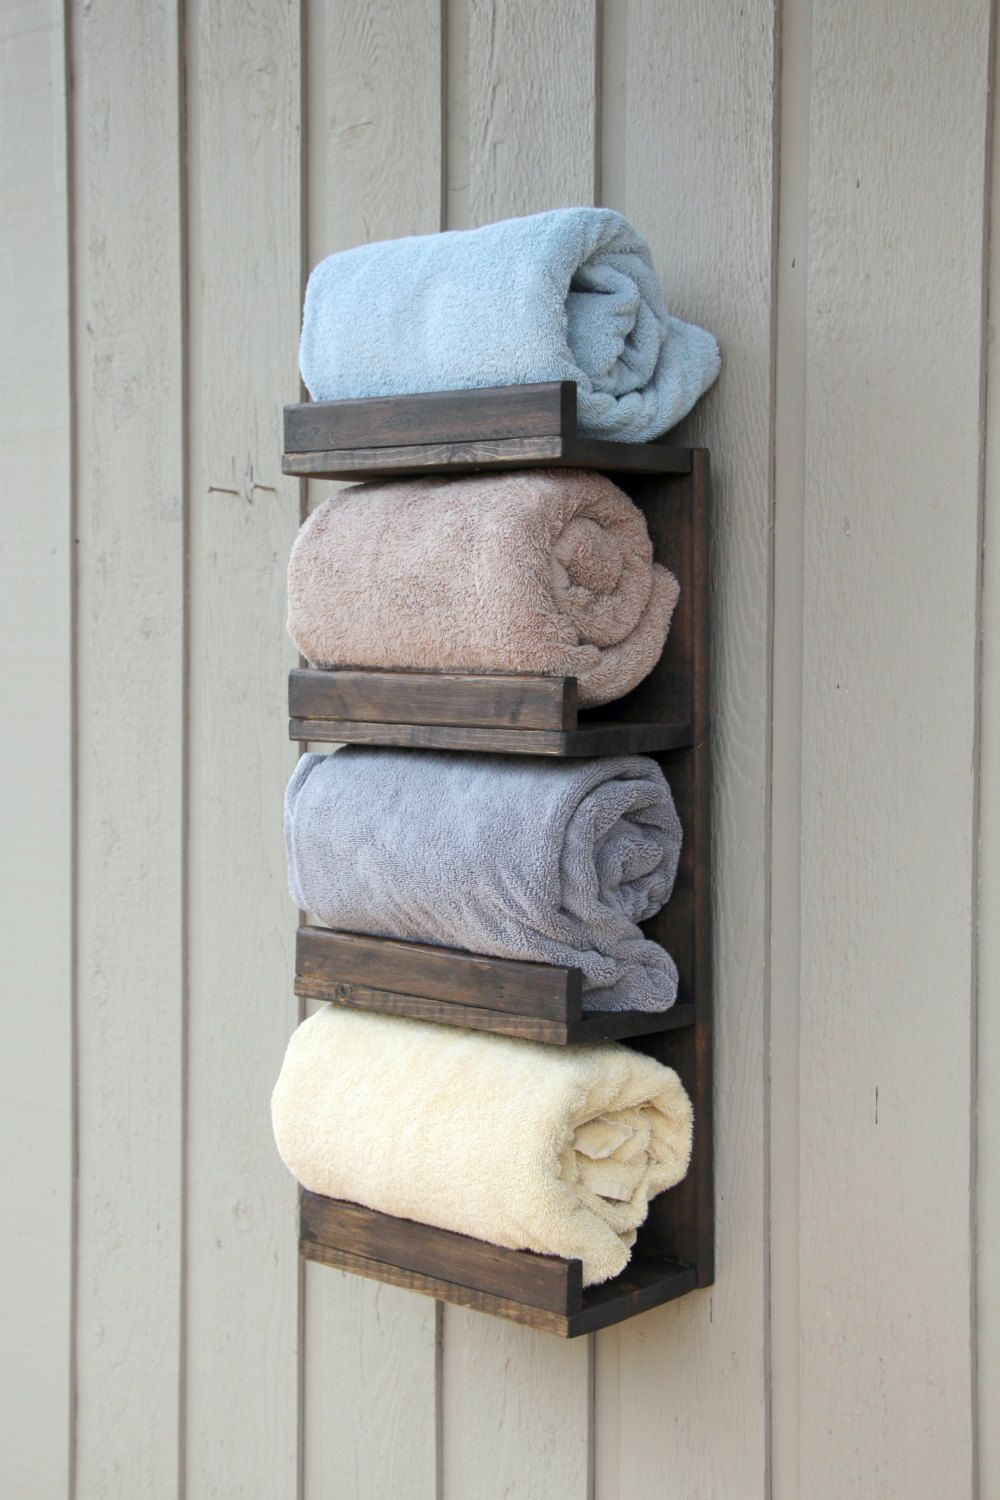 Bathroom Towel Rack 4 Tier Bath Storage Everyday Towel Rack